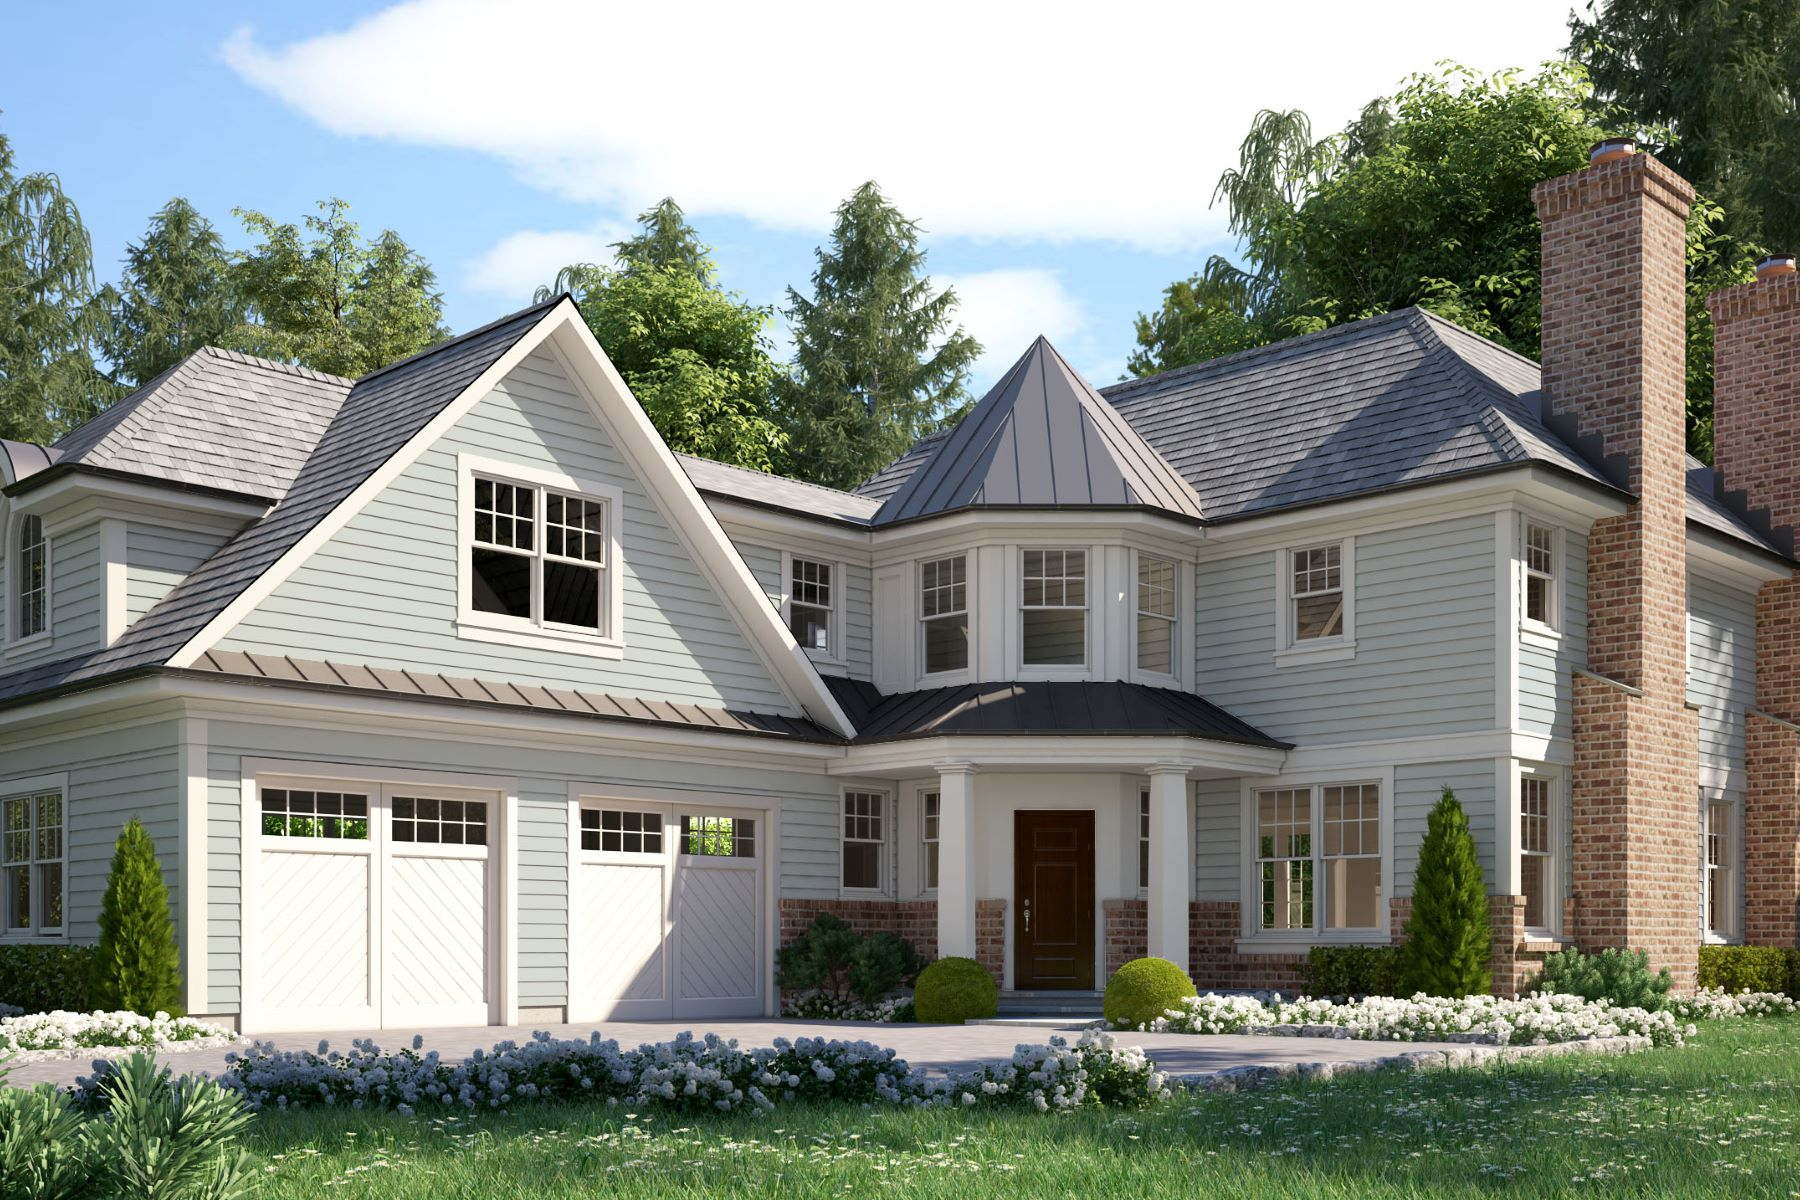 Single Family Homes for Active at 1 Patricia Court Harrison, New York 10528 United States